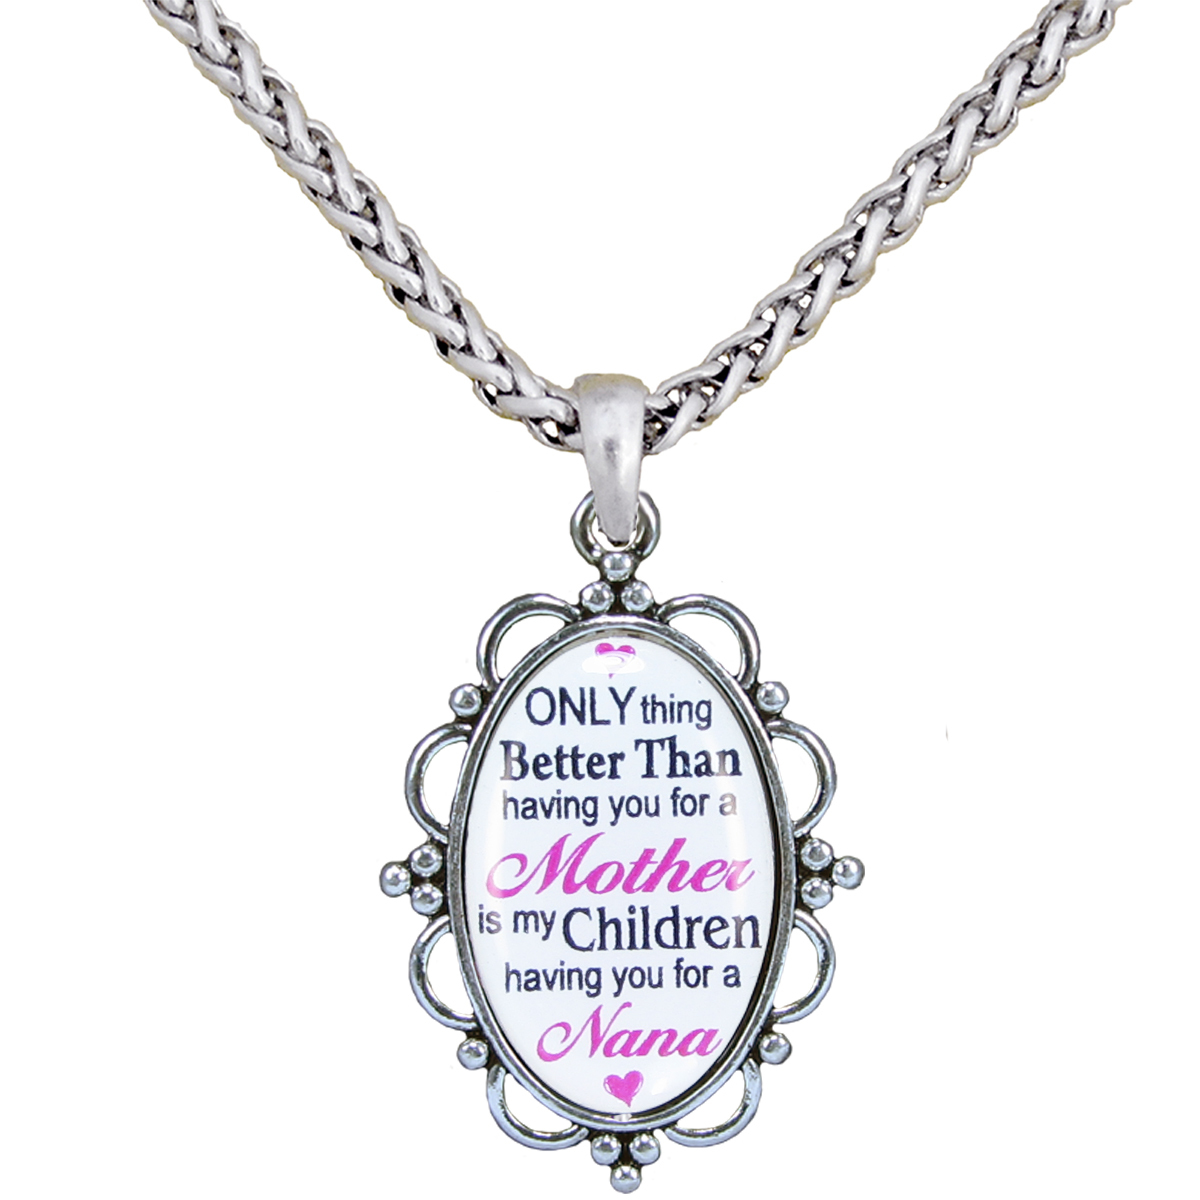 "Only Thing Better Than Mother Nana Silver Plate 30"" Necklace Jewelry Gift"